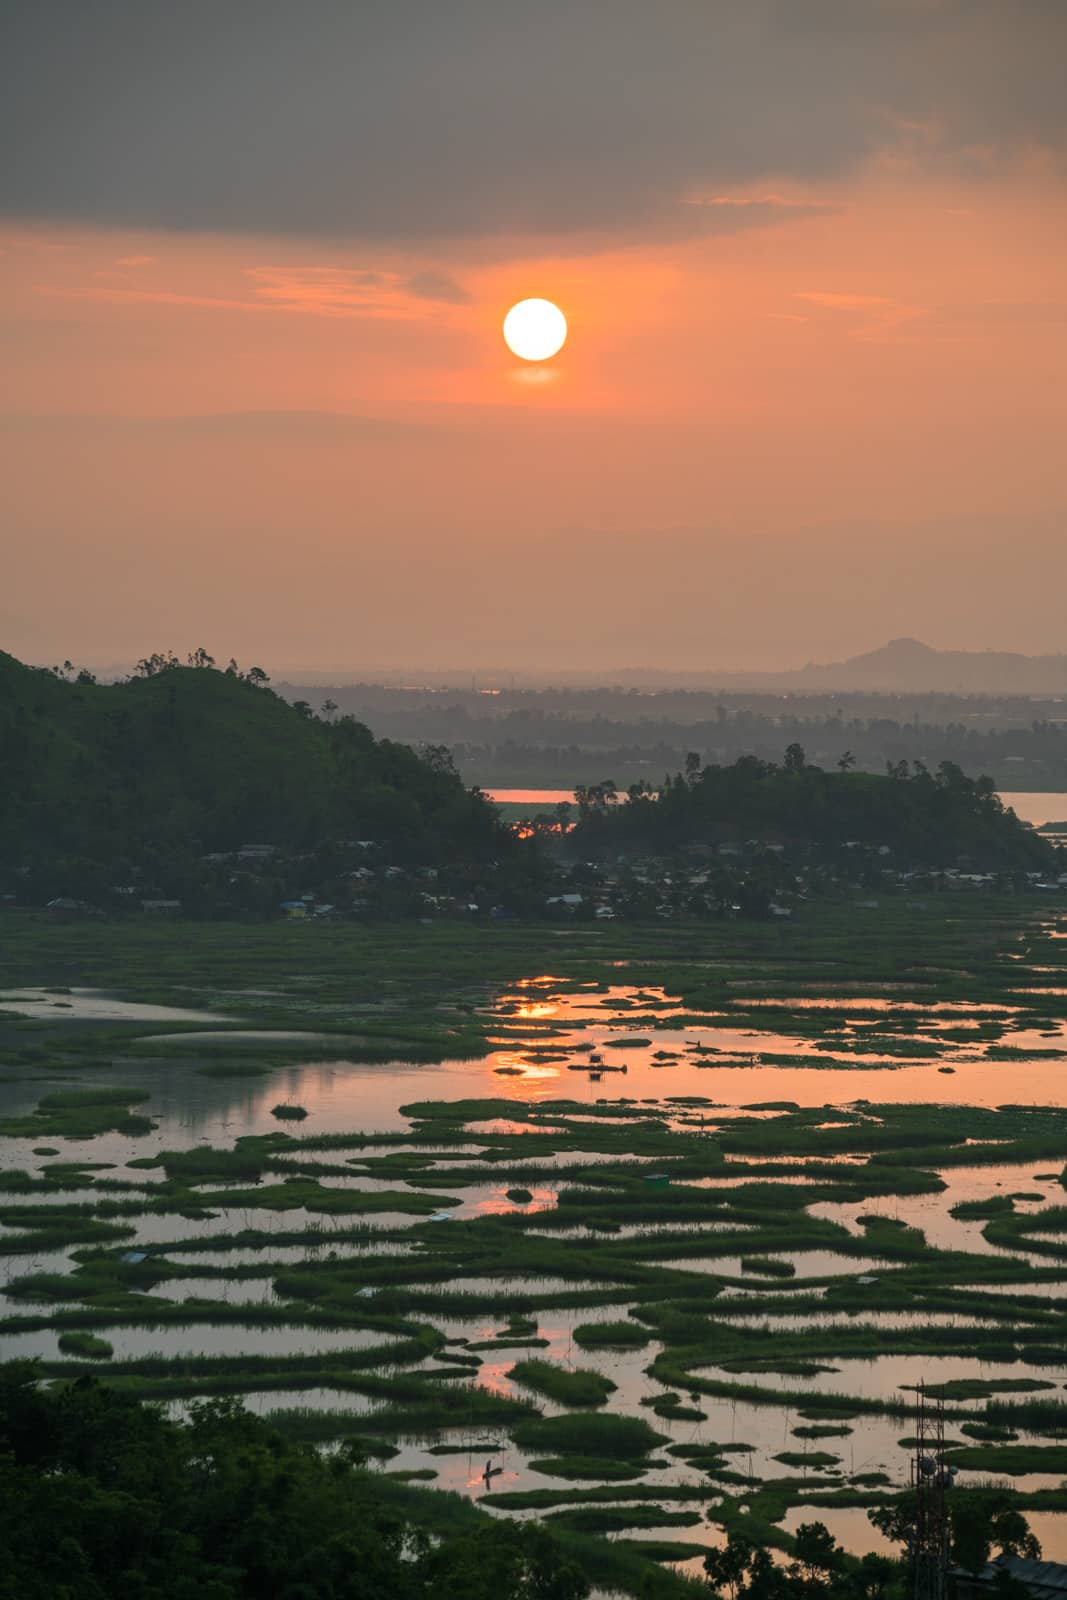 Sunrise over Loktak Lake, a peaceful offbeat destination in Manipur state, Northeast India.